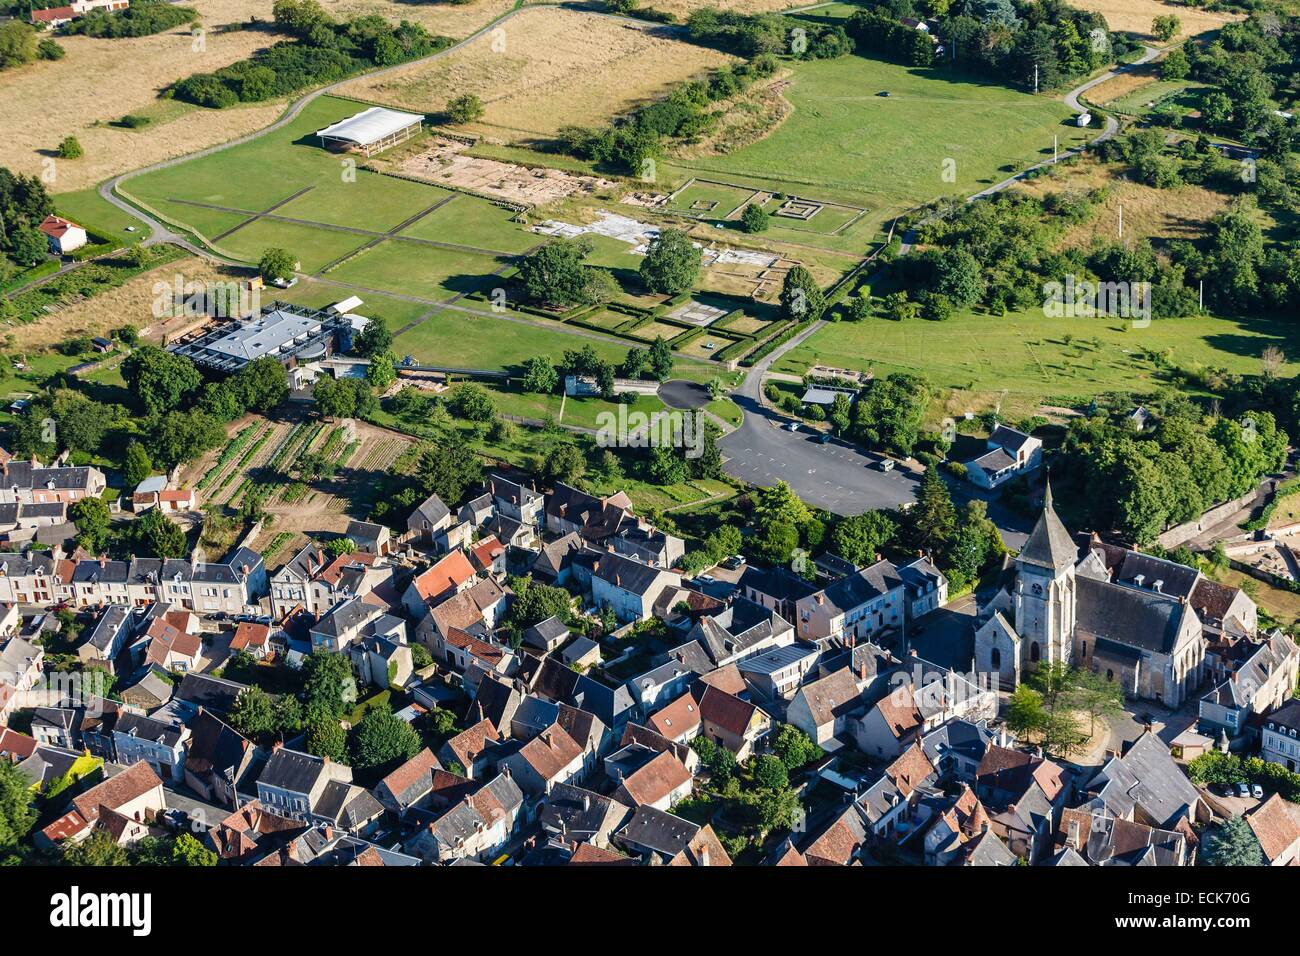 France, Indre, Saint Marcel, archaelogical excavation and the village (aerial view) - Stock Image